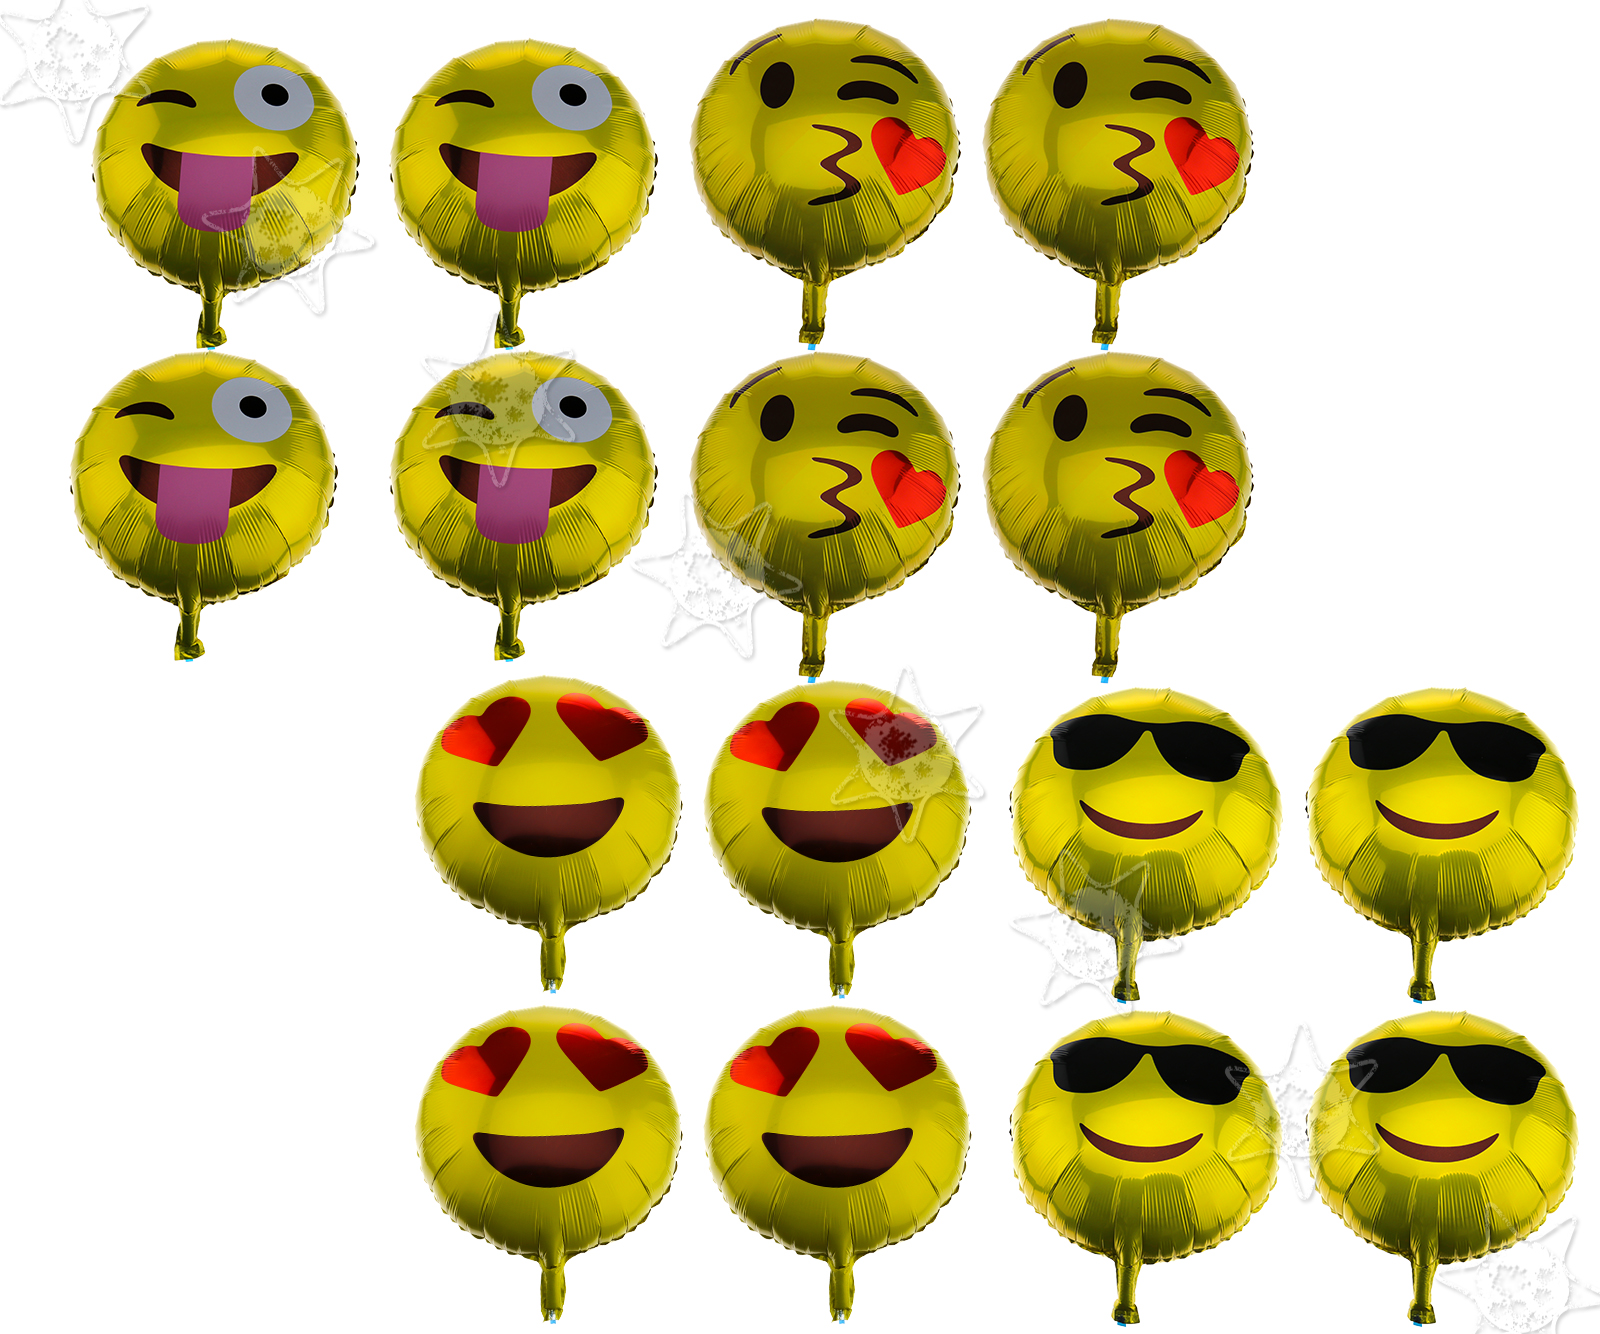 Details About 16 X 18 Foil Emoji Helium Balloon Happy Birthday Party Smiley Wink Decoration